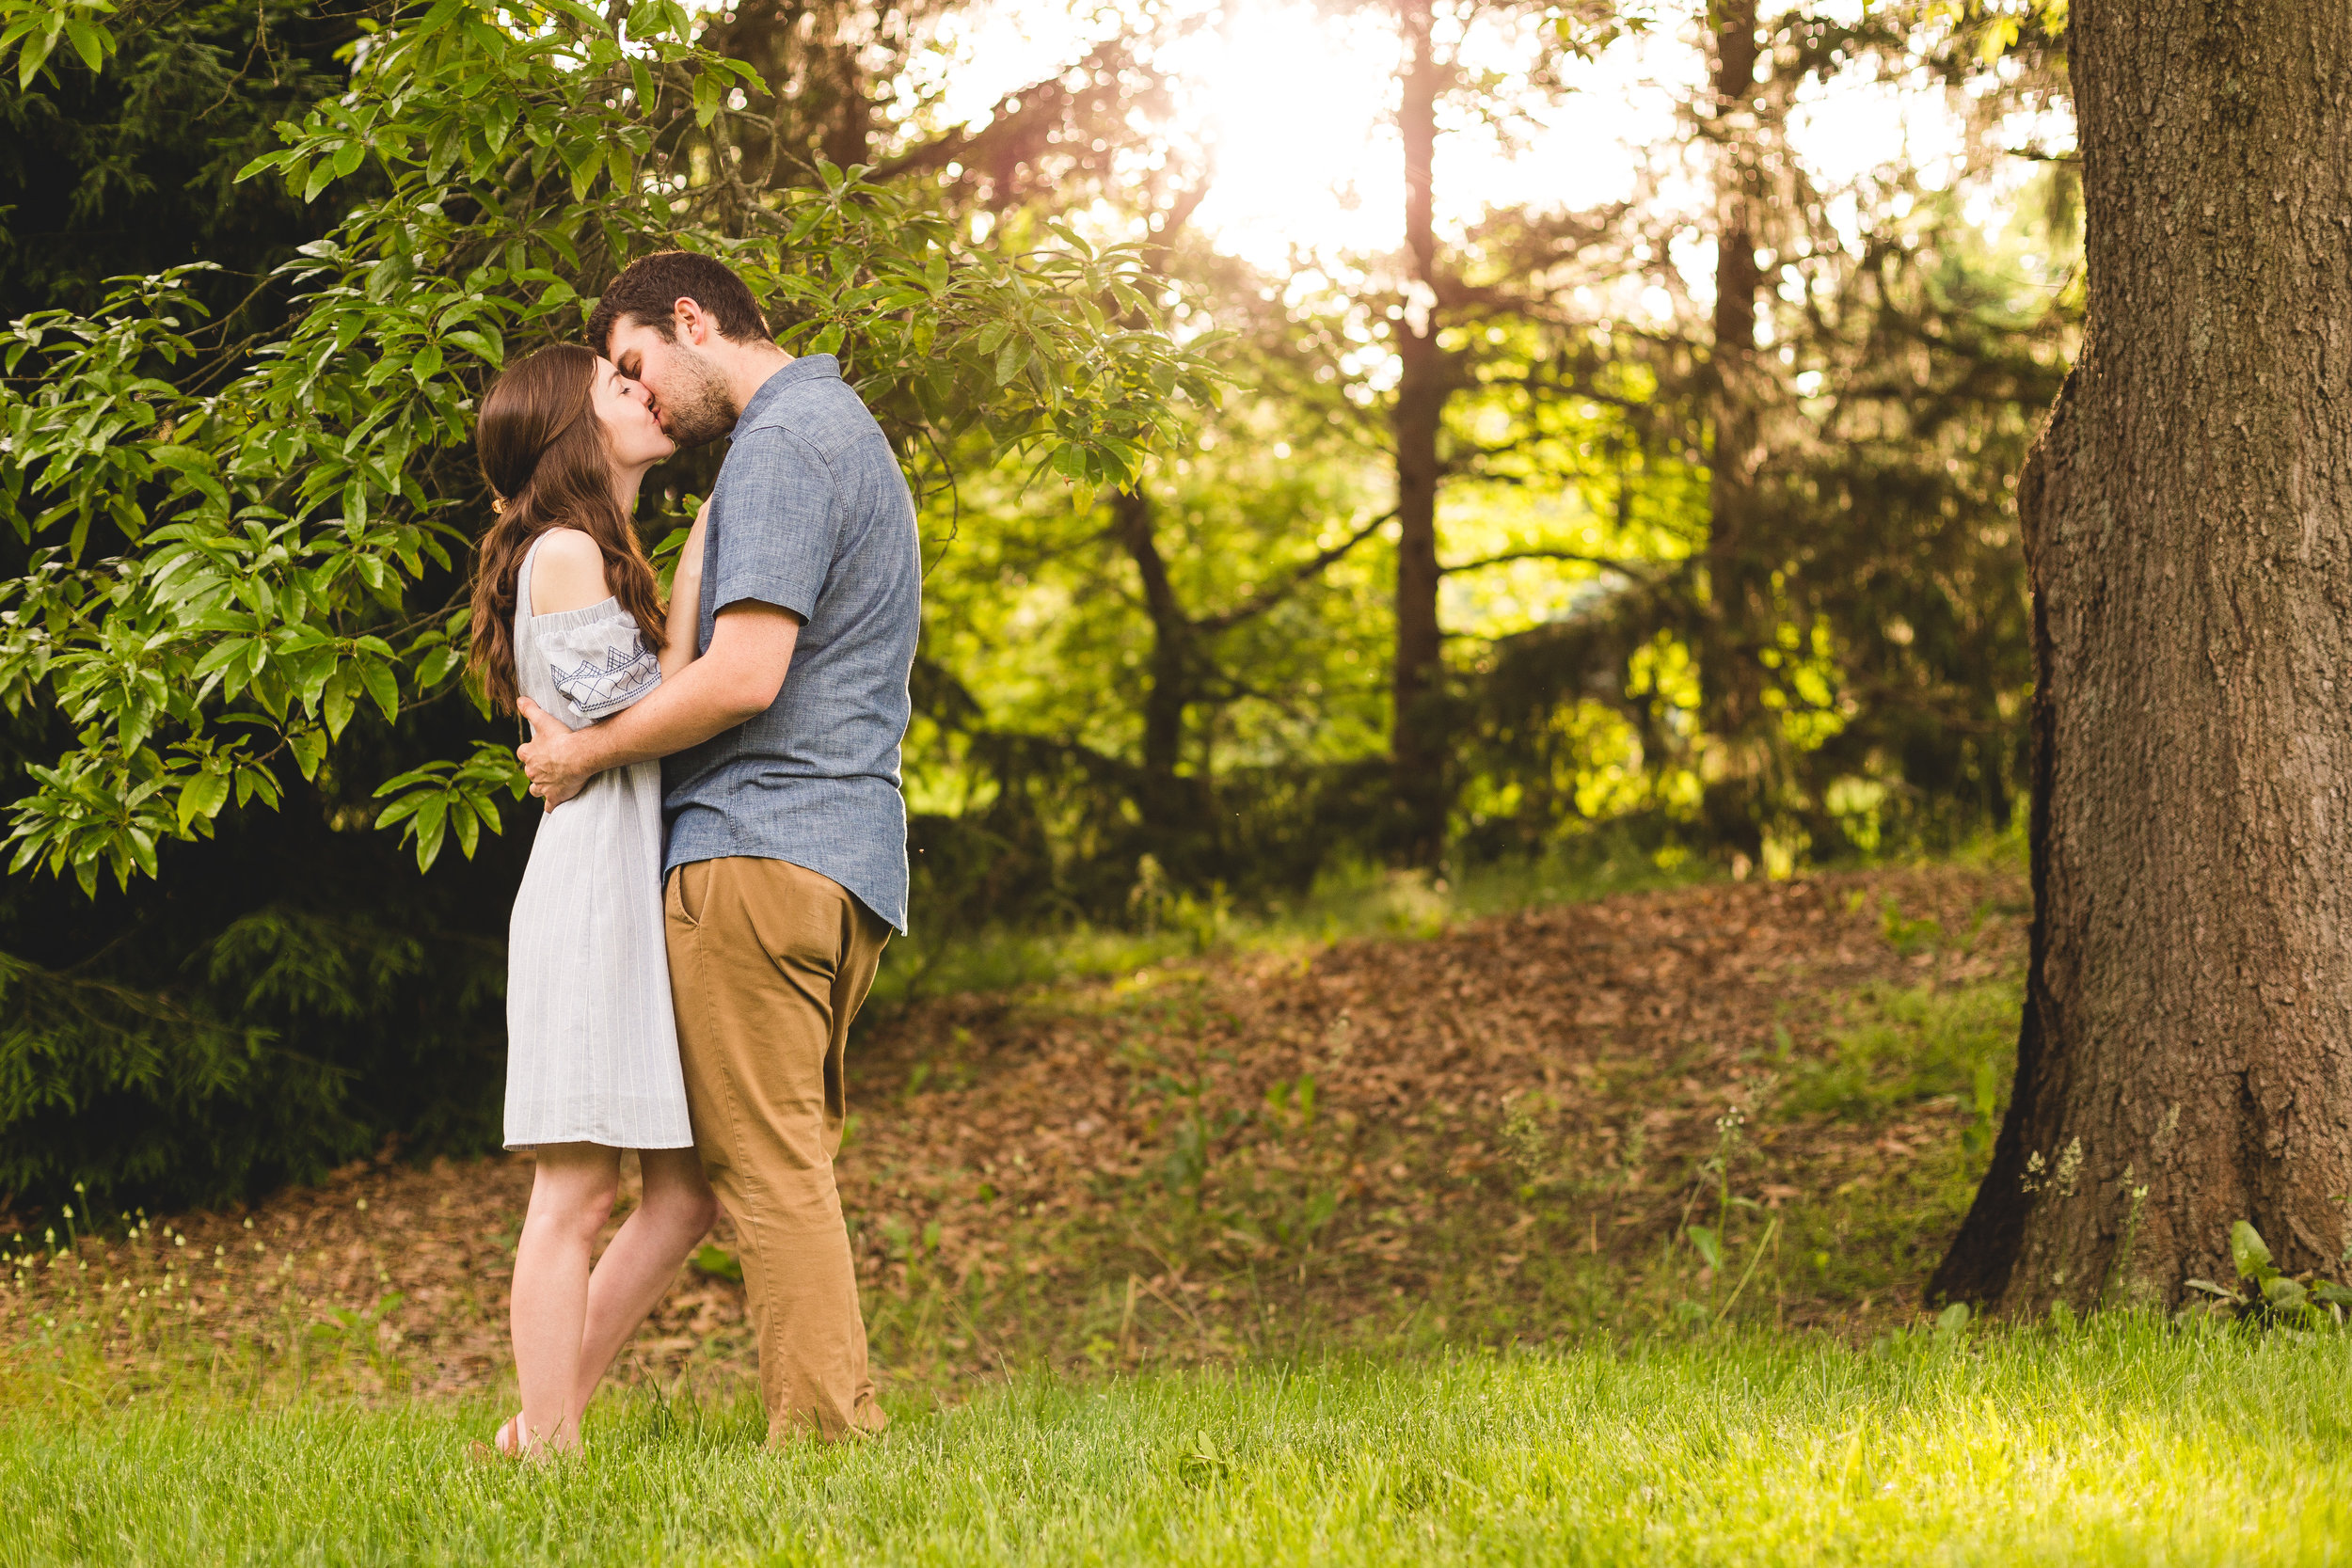 jennifer and nate kissing during their engagement session at Innis wood metro gardens in westerville ohio